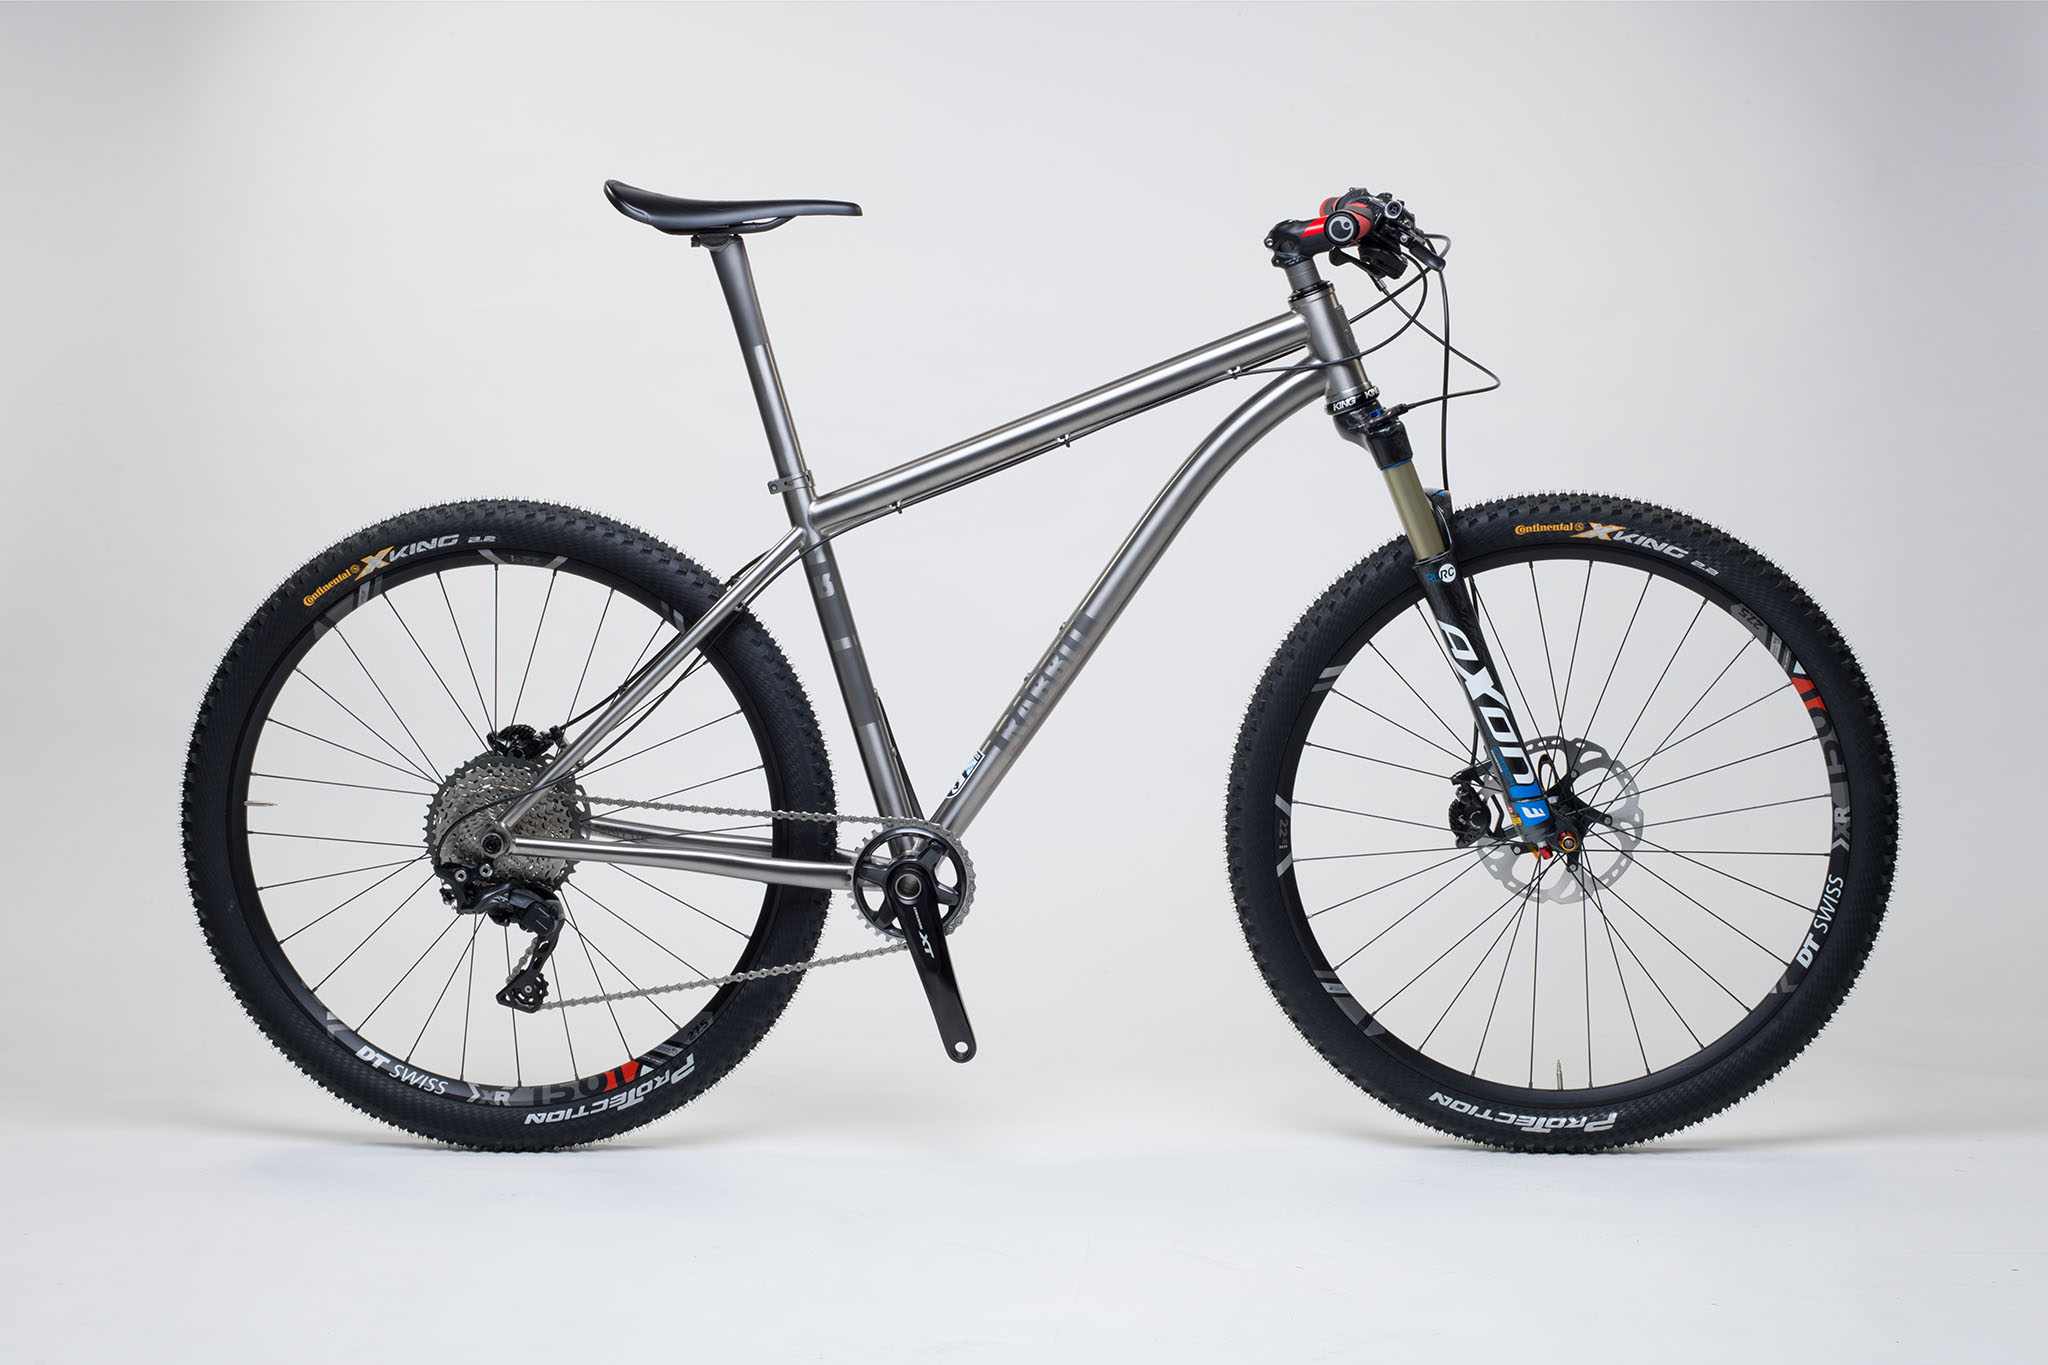 titan_mtb_boost_classic_27_er_26_from_rabbit_titan_cycles_bavaria